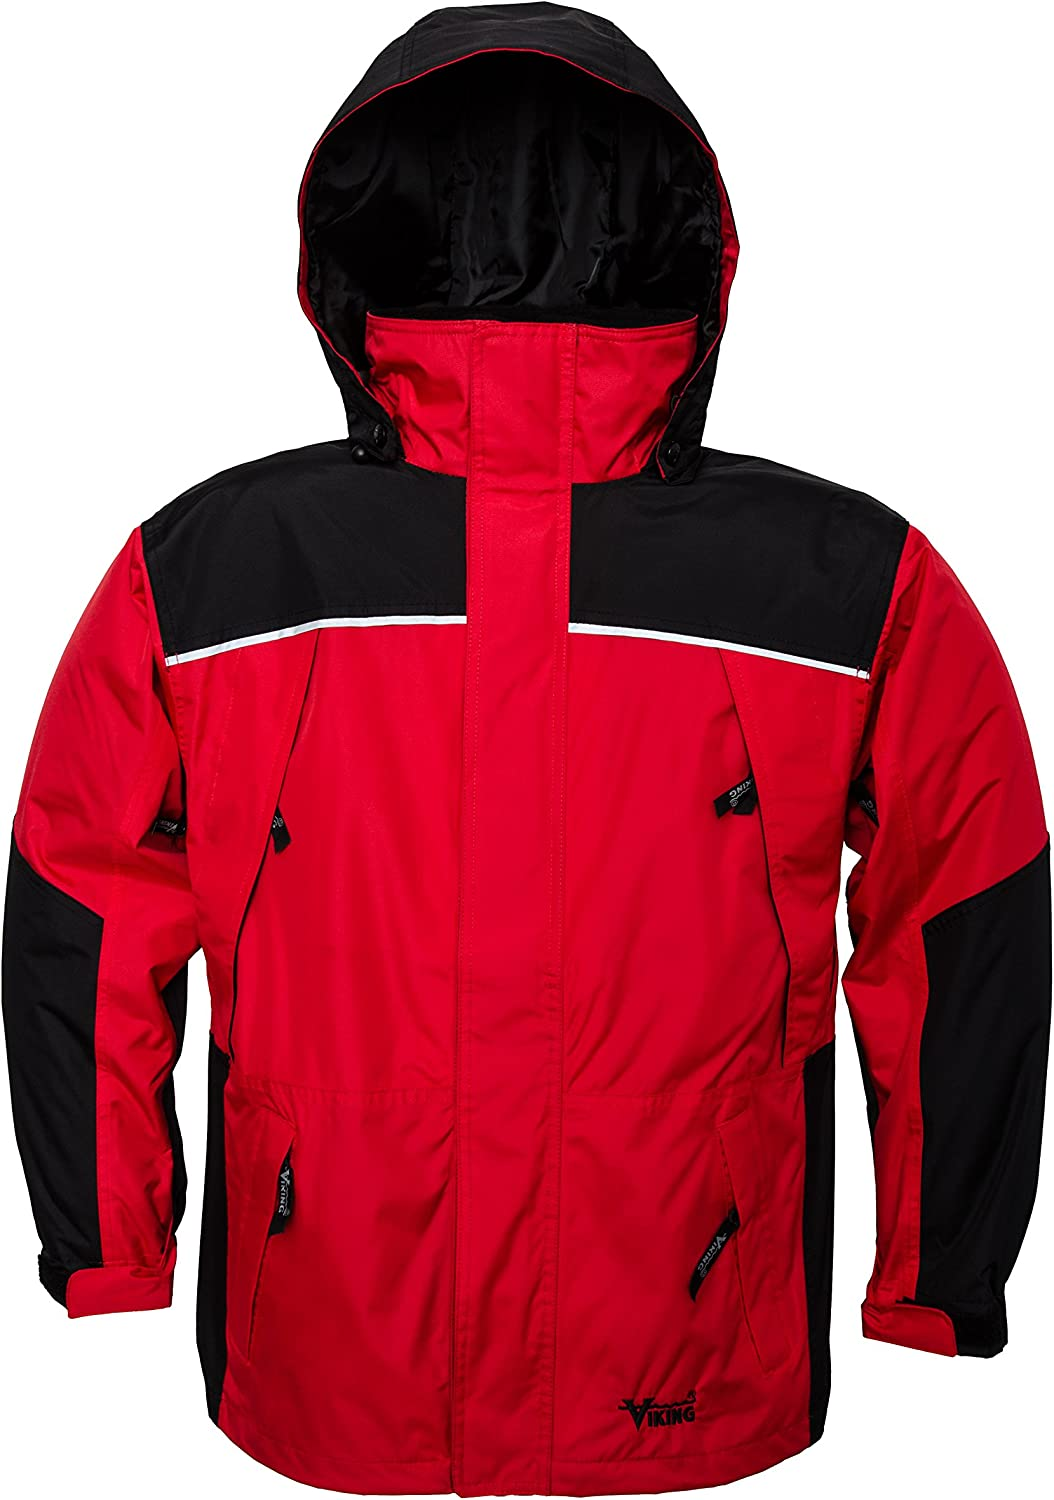 Viking Men's Tempest Classic Waterproof Rain Jacket, Red Charcoal, XXLarge